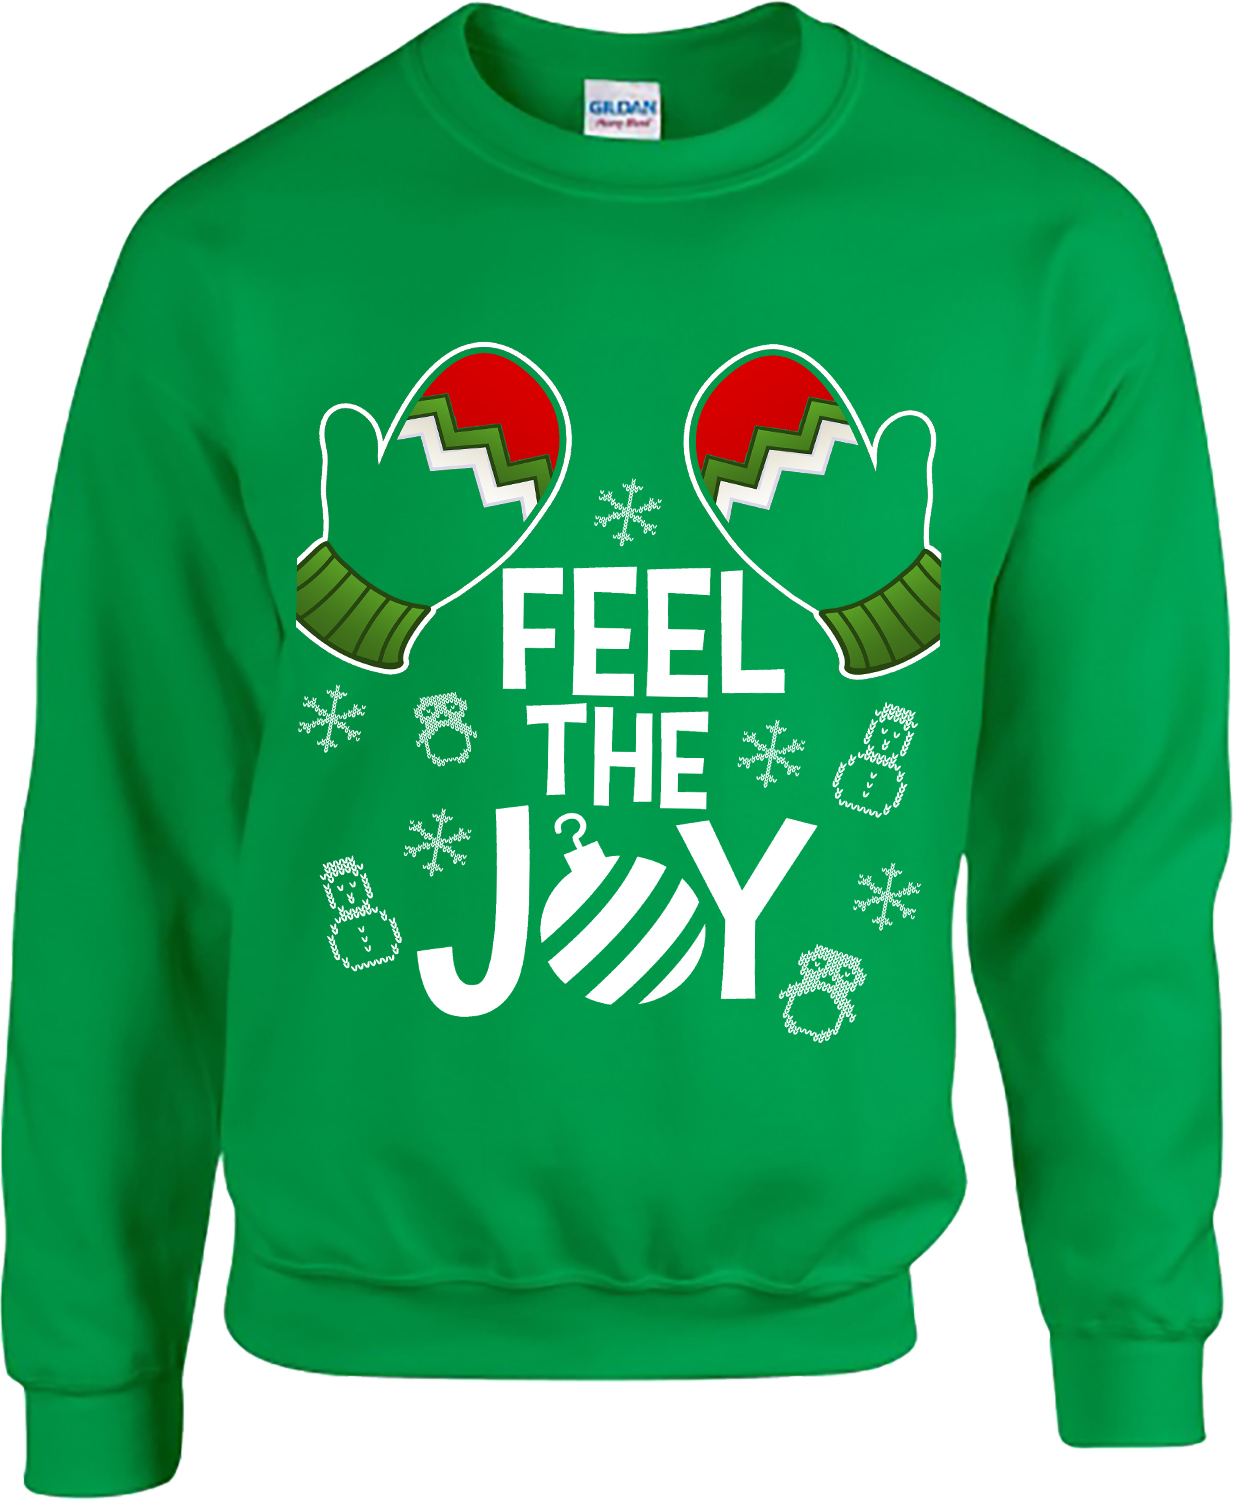 feel the joy ugly christmas sweater party feel the joy ugly christmas sweater - Feel The Joy Christmas Sweater